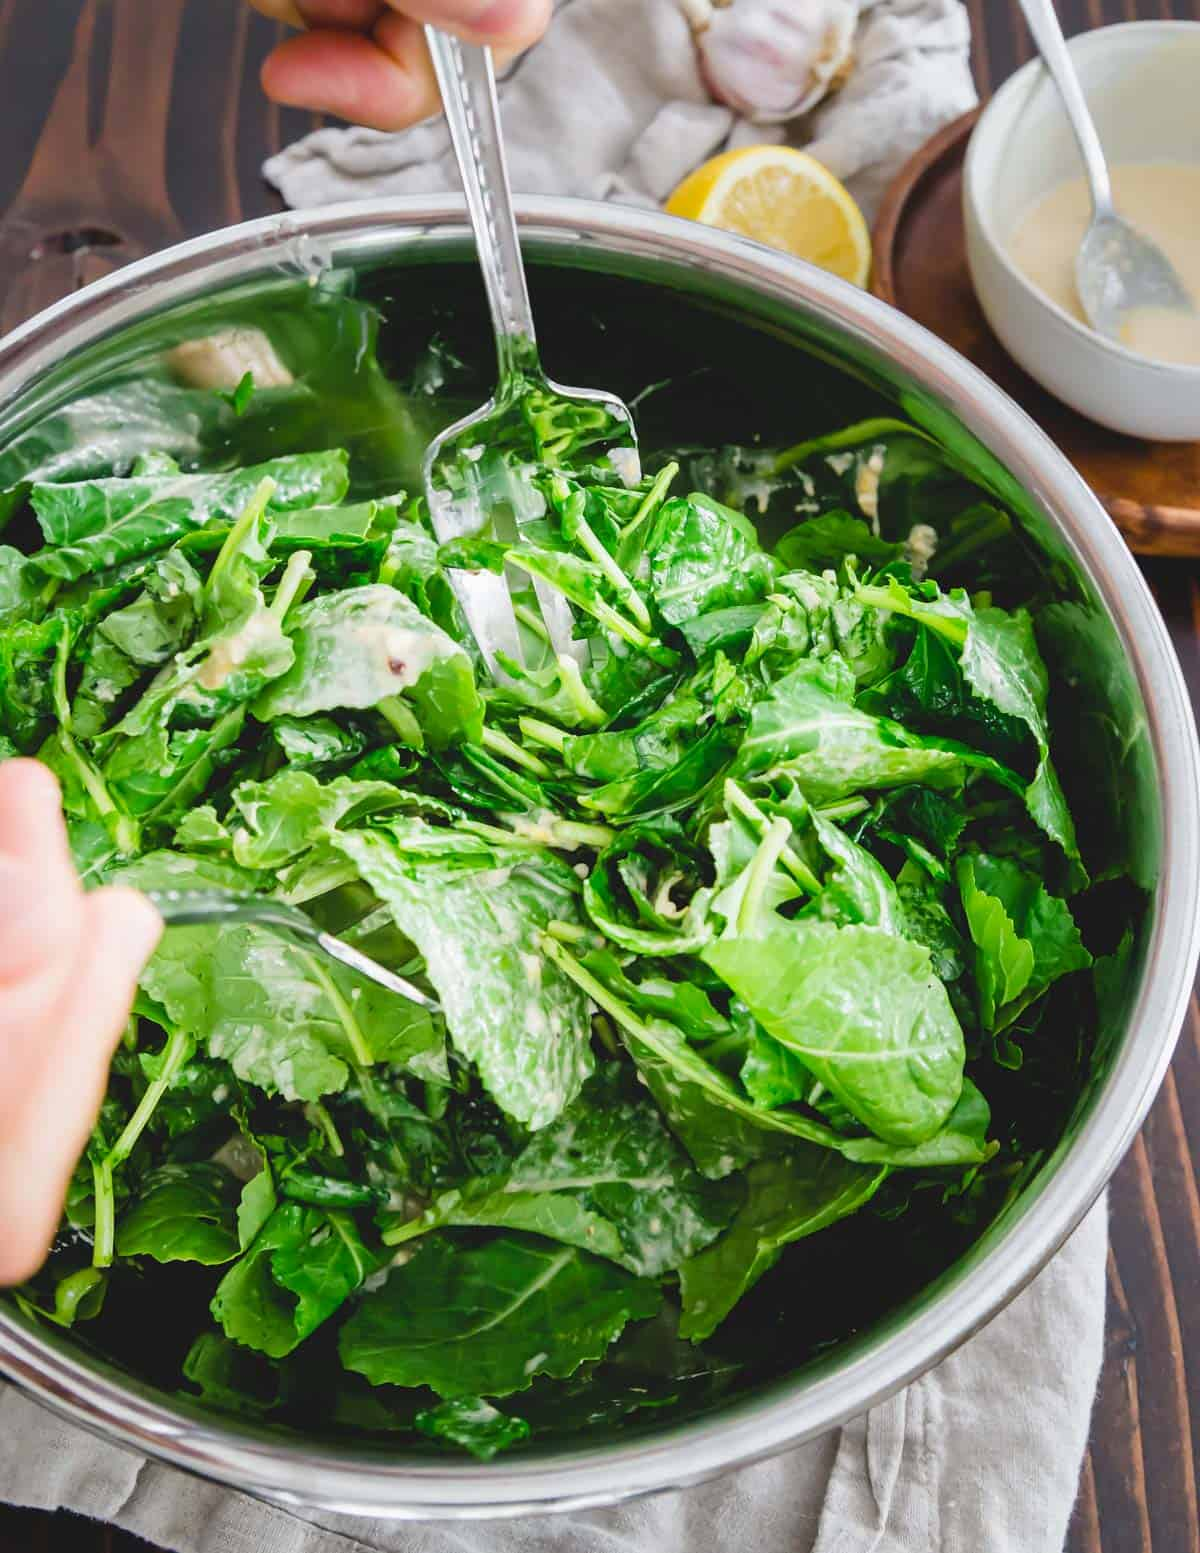 Baby kale greens are tossed in a lemon, garlic tahini dressing with nutritional yeast.